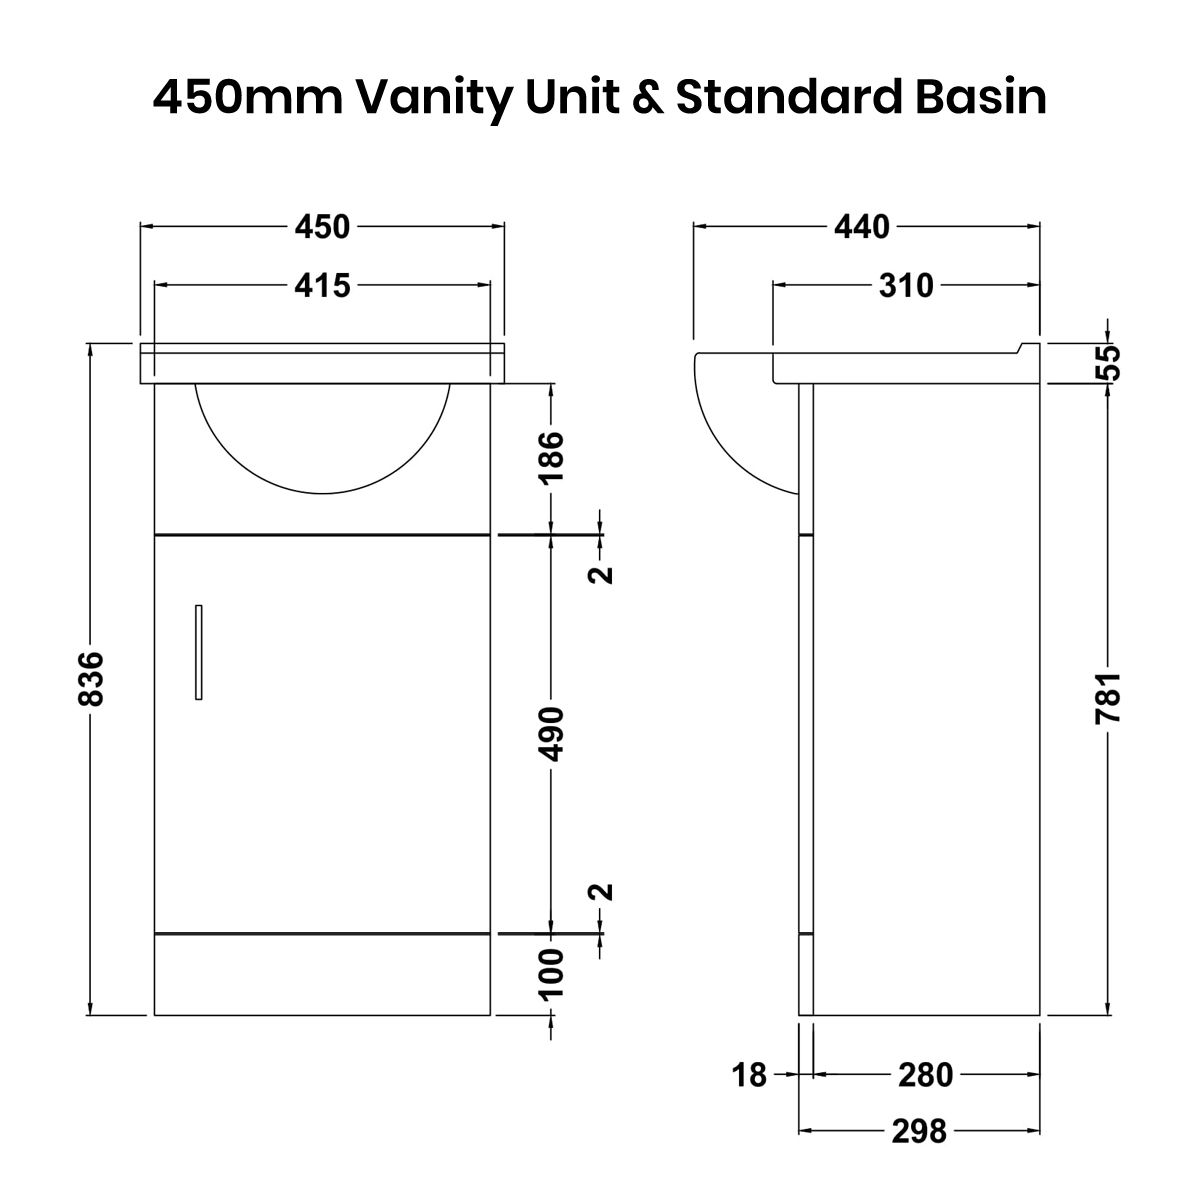 Nuie High Gloss White Vanity Unit 450mm Standard Basin Dimensions